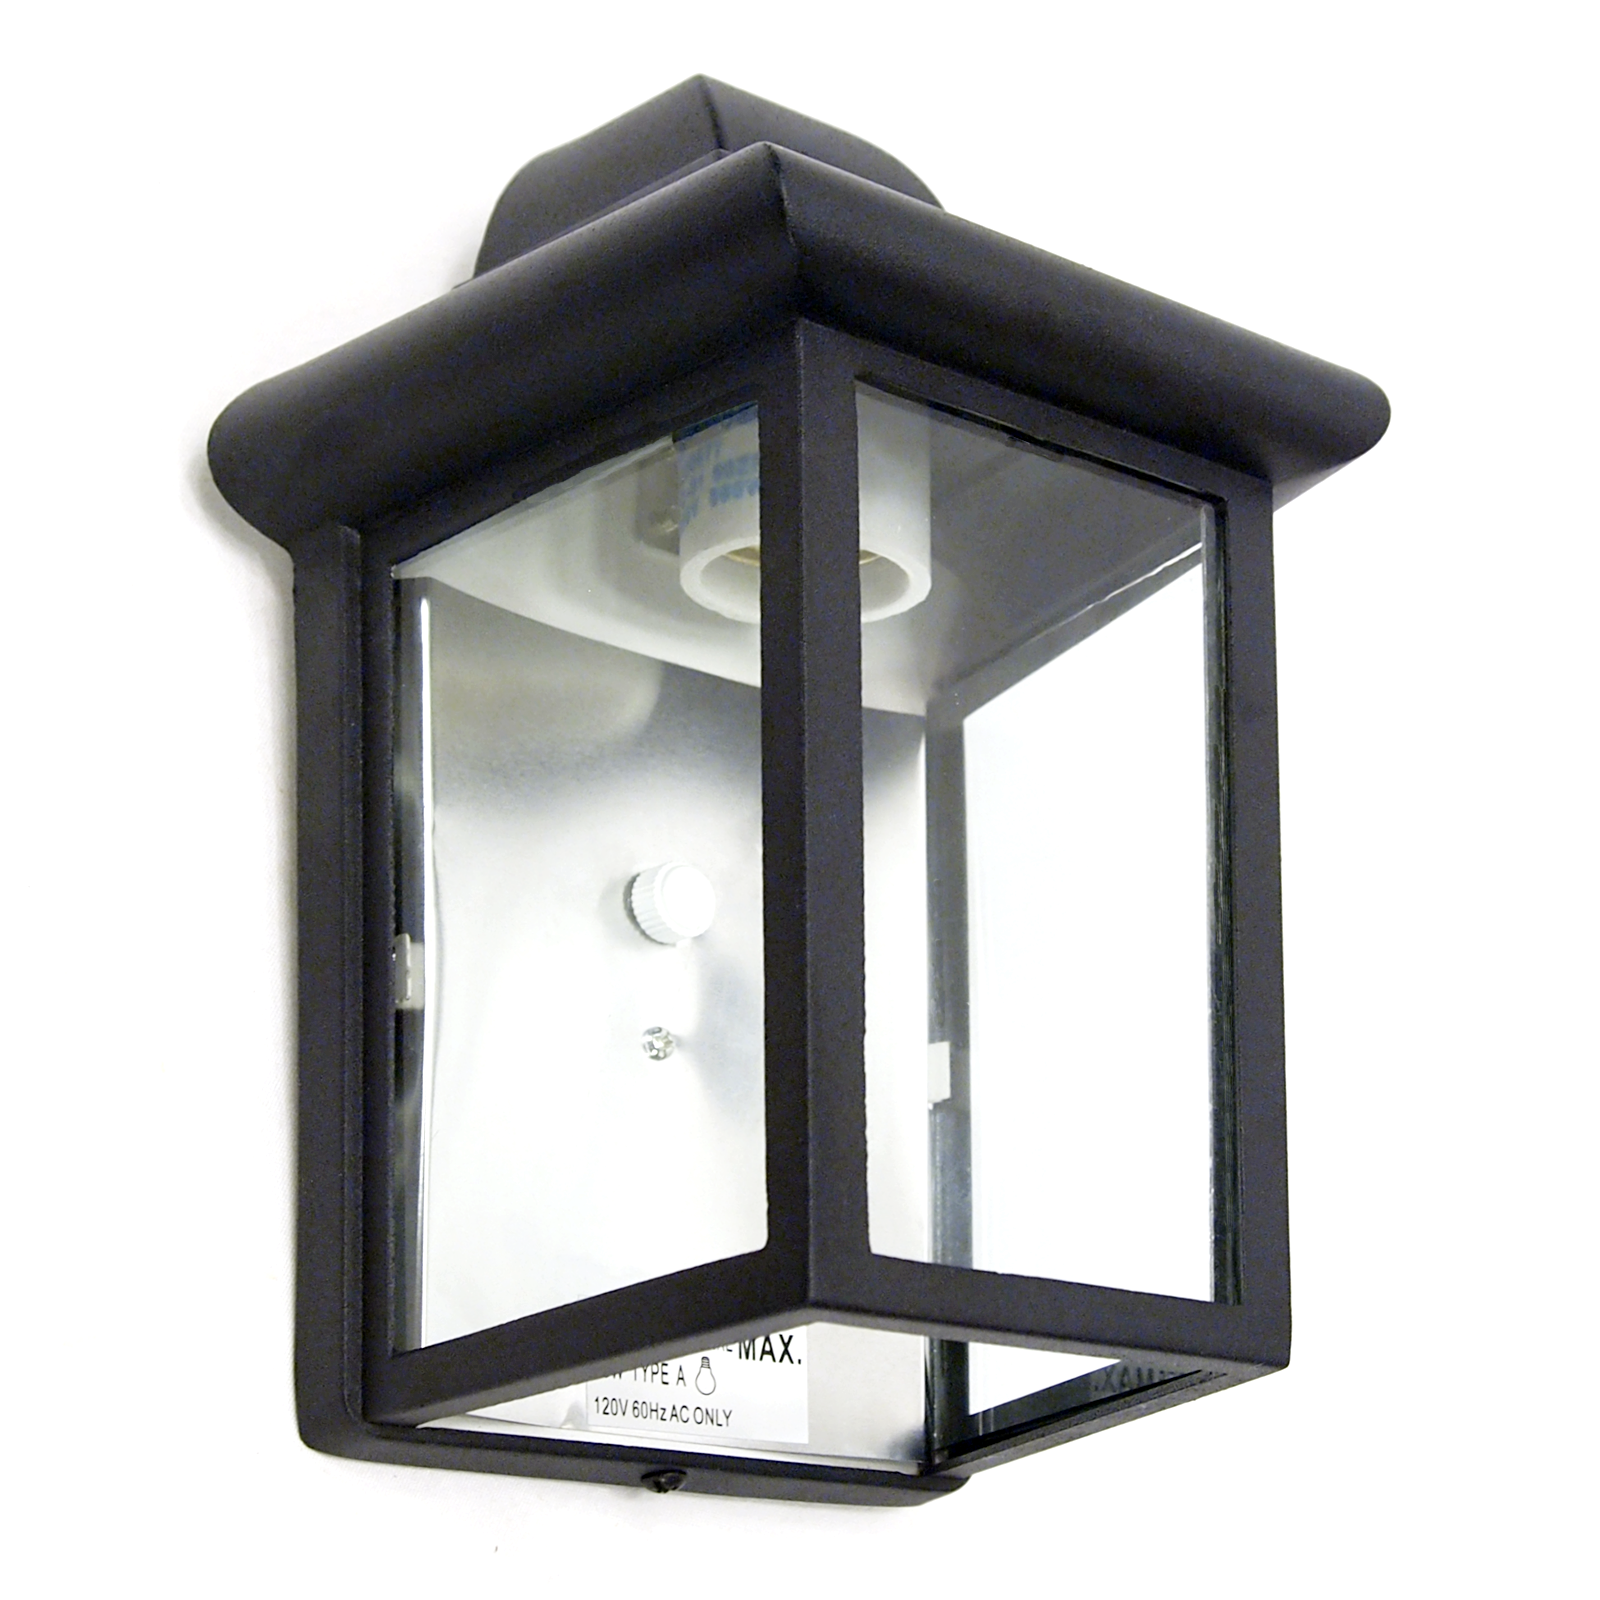 Outdoor porch light led bulb 9 black fixture with clear glass panes 458 06 for sale online